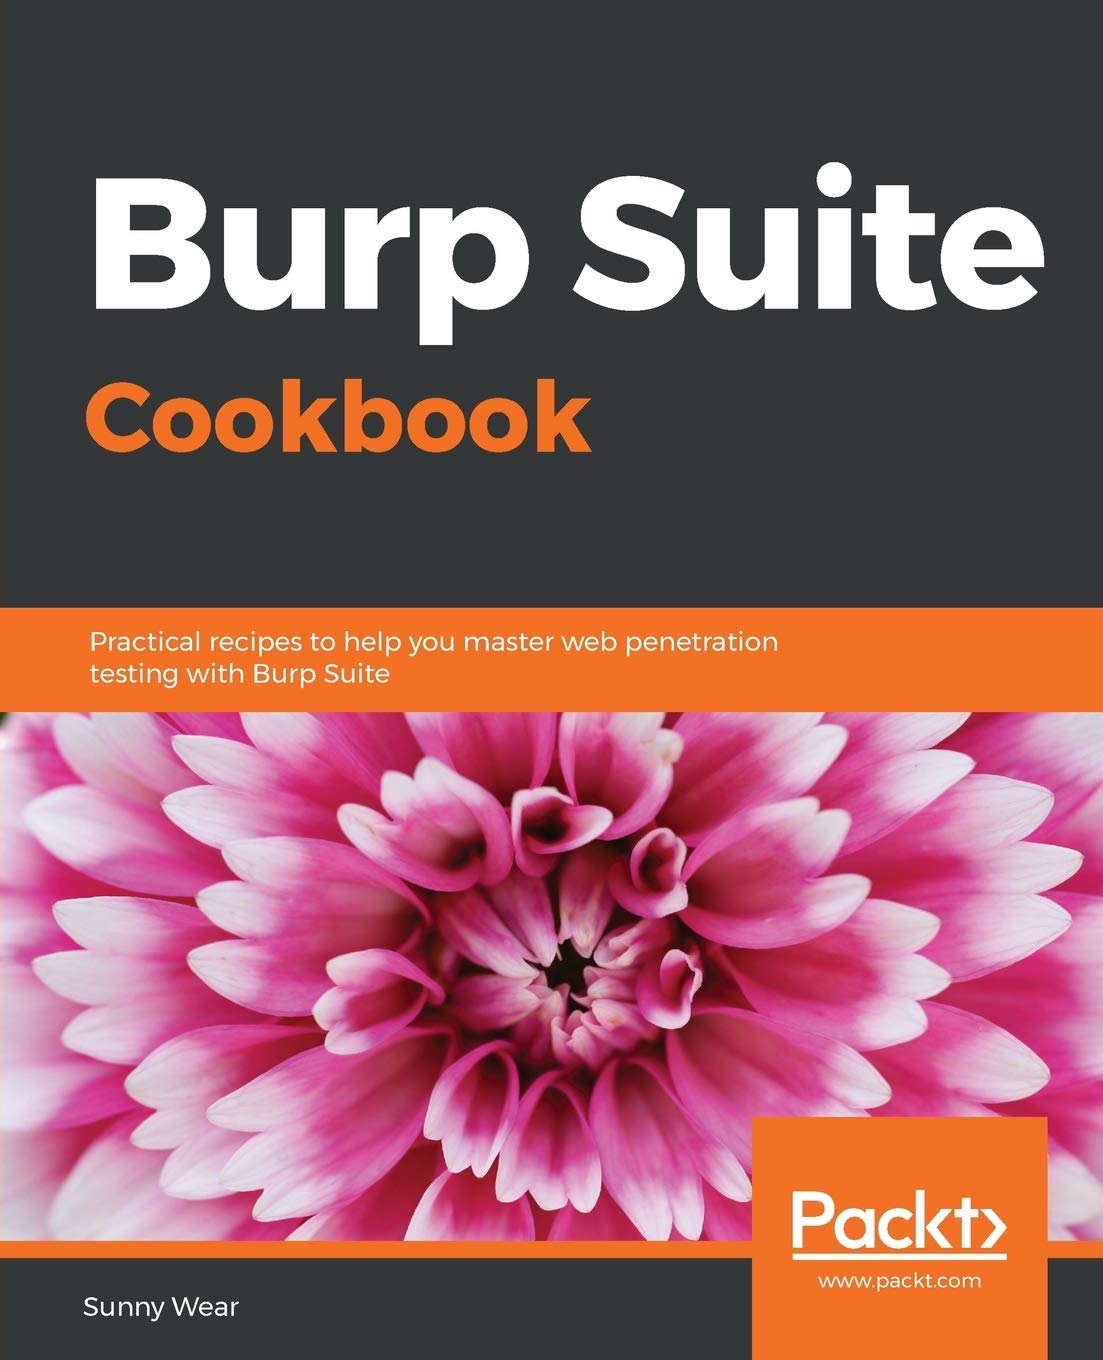 Download Burp Suite Cookbook: Practical Recipes To Help You Master Web Penetration Testing With Burp Suite 